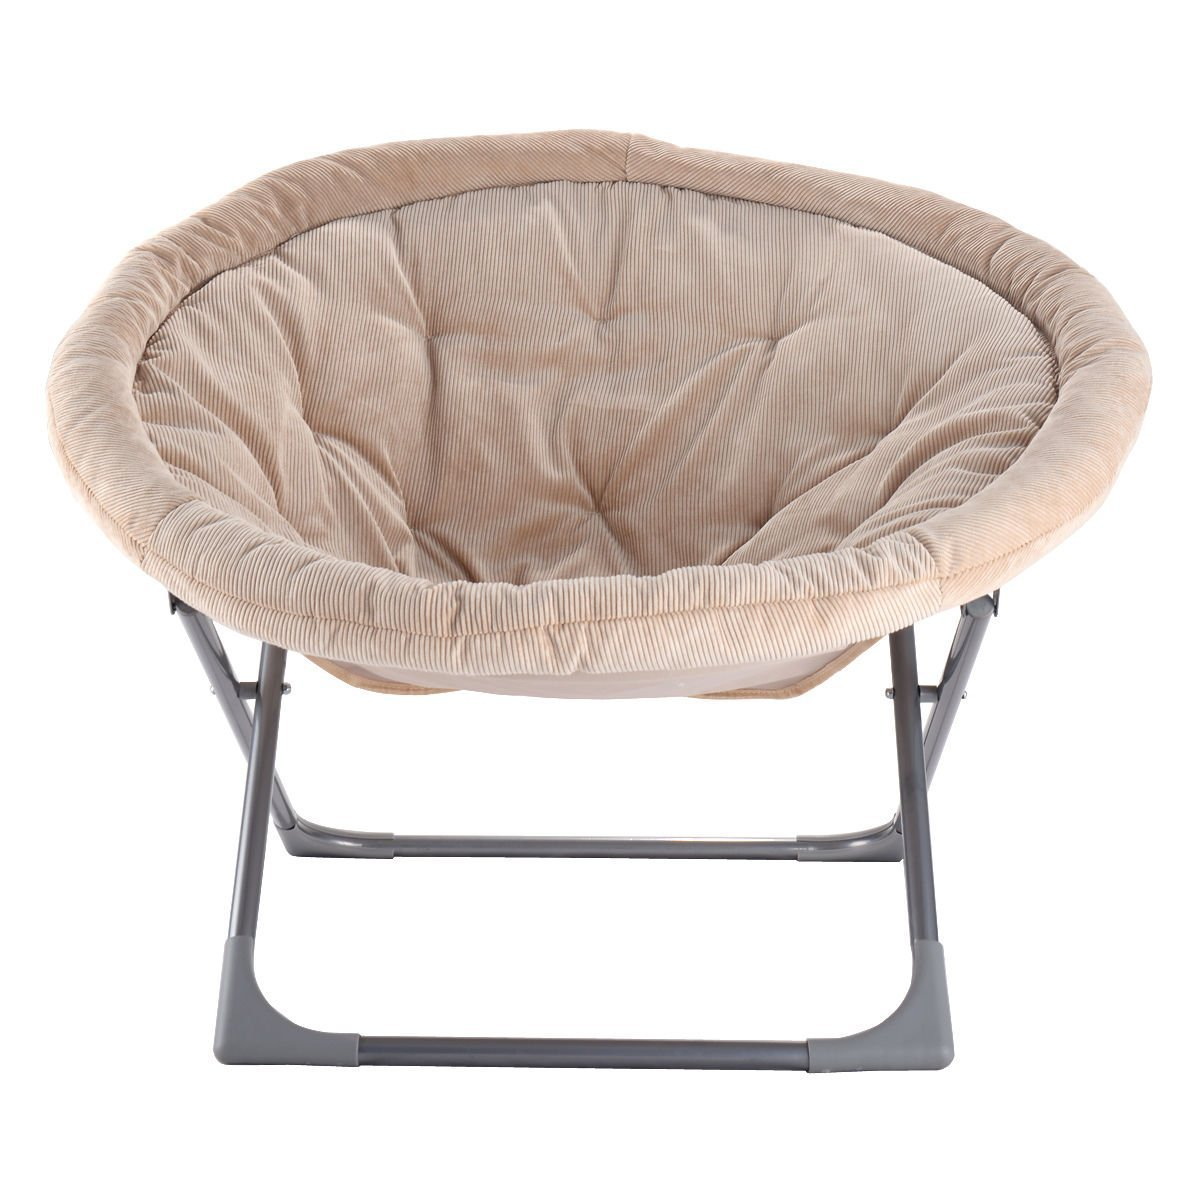 Oversized Large Folding Saucer Moon Chair Corduroy Round Seat Living Room Bei